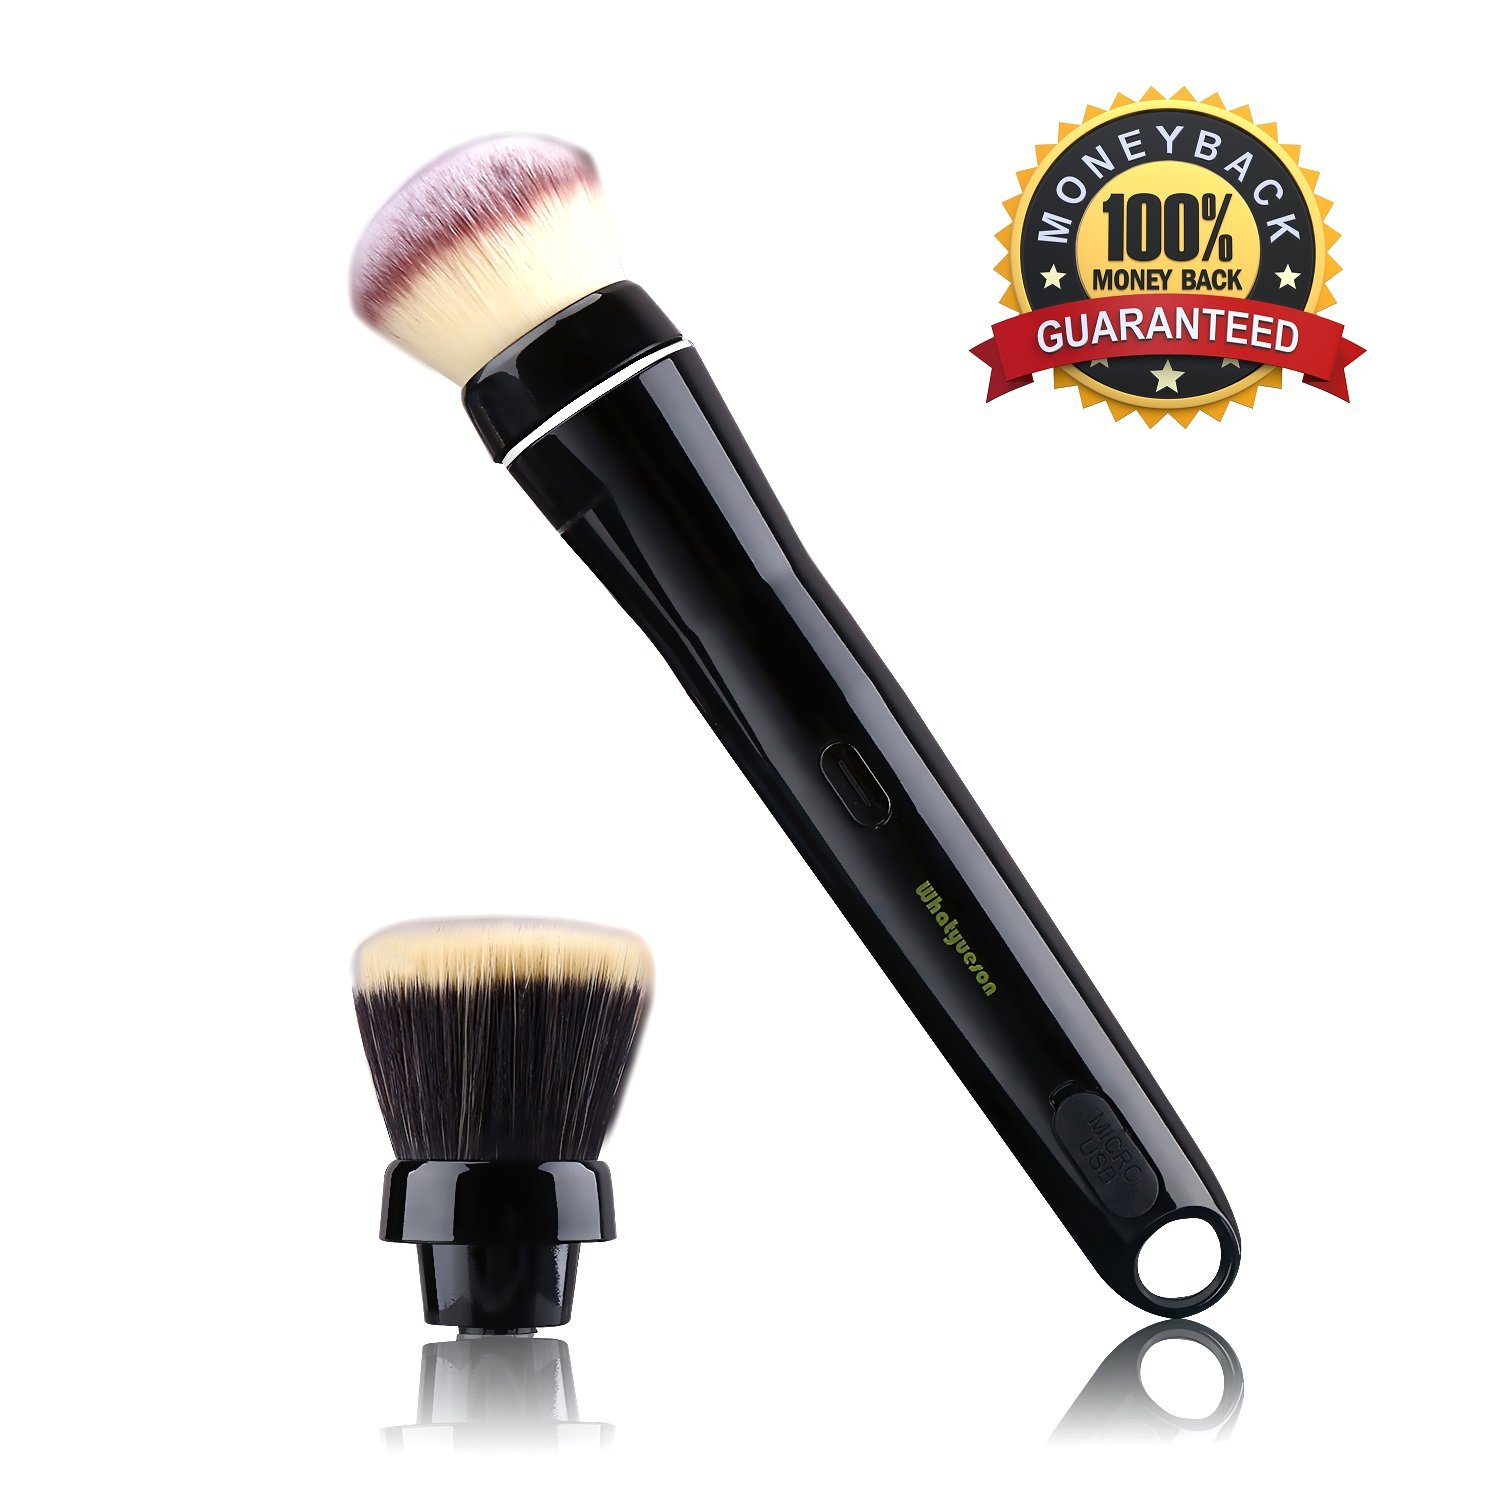 Electric Makeup Brush, Powder Brush Professional Cosmetic Brush 360 Degree Rotatable Set with Detachable Brush And Foundation Makeup Brush Heads, USB Rechargeable, Gift Wrap Powder Brush(Black)